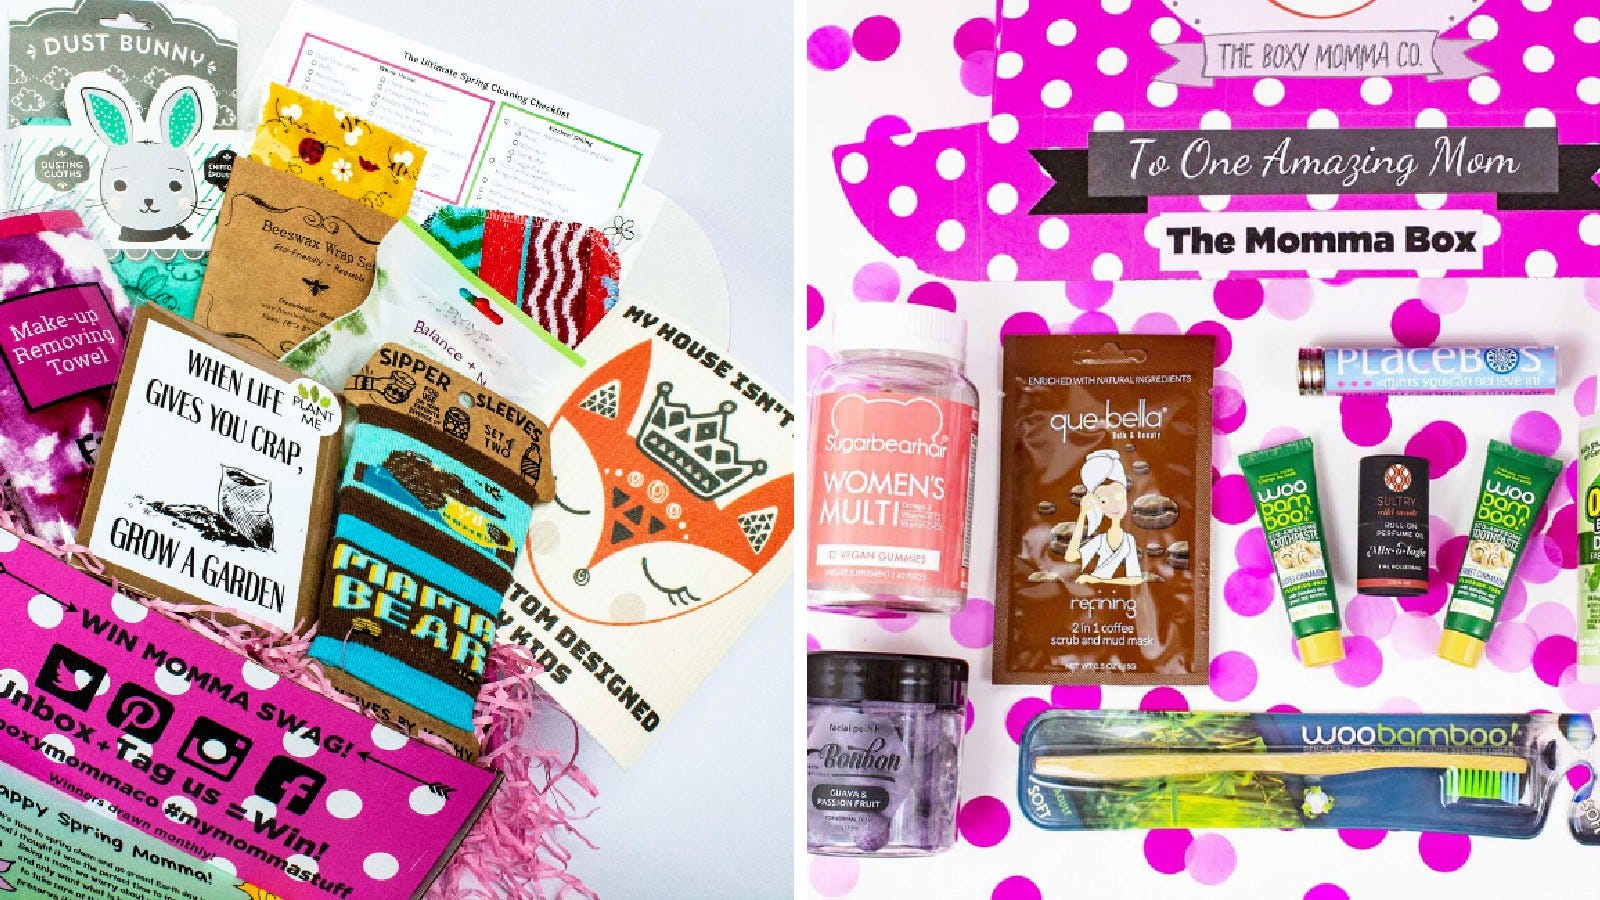 Examples of the variety of items found in The Boxy Momma boxes.